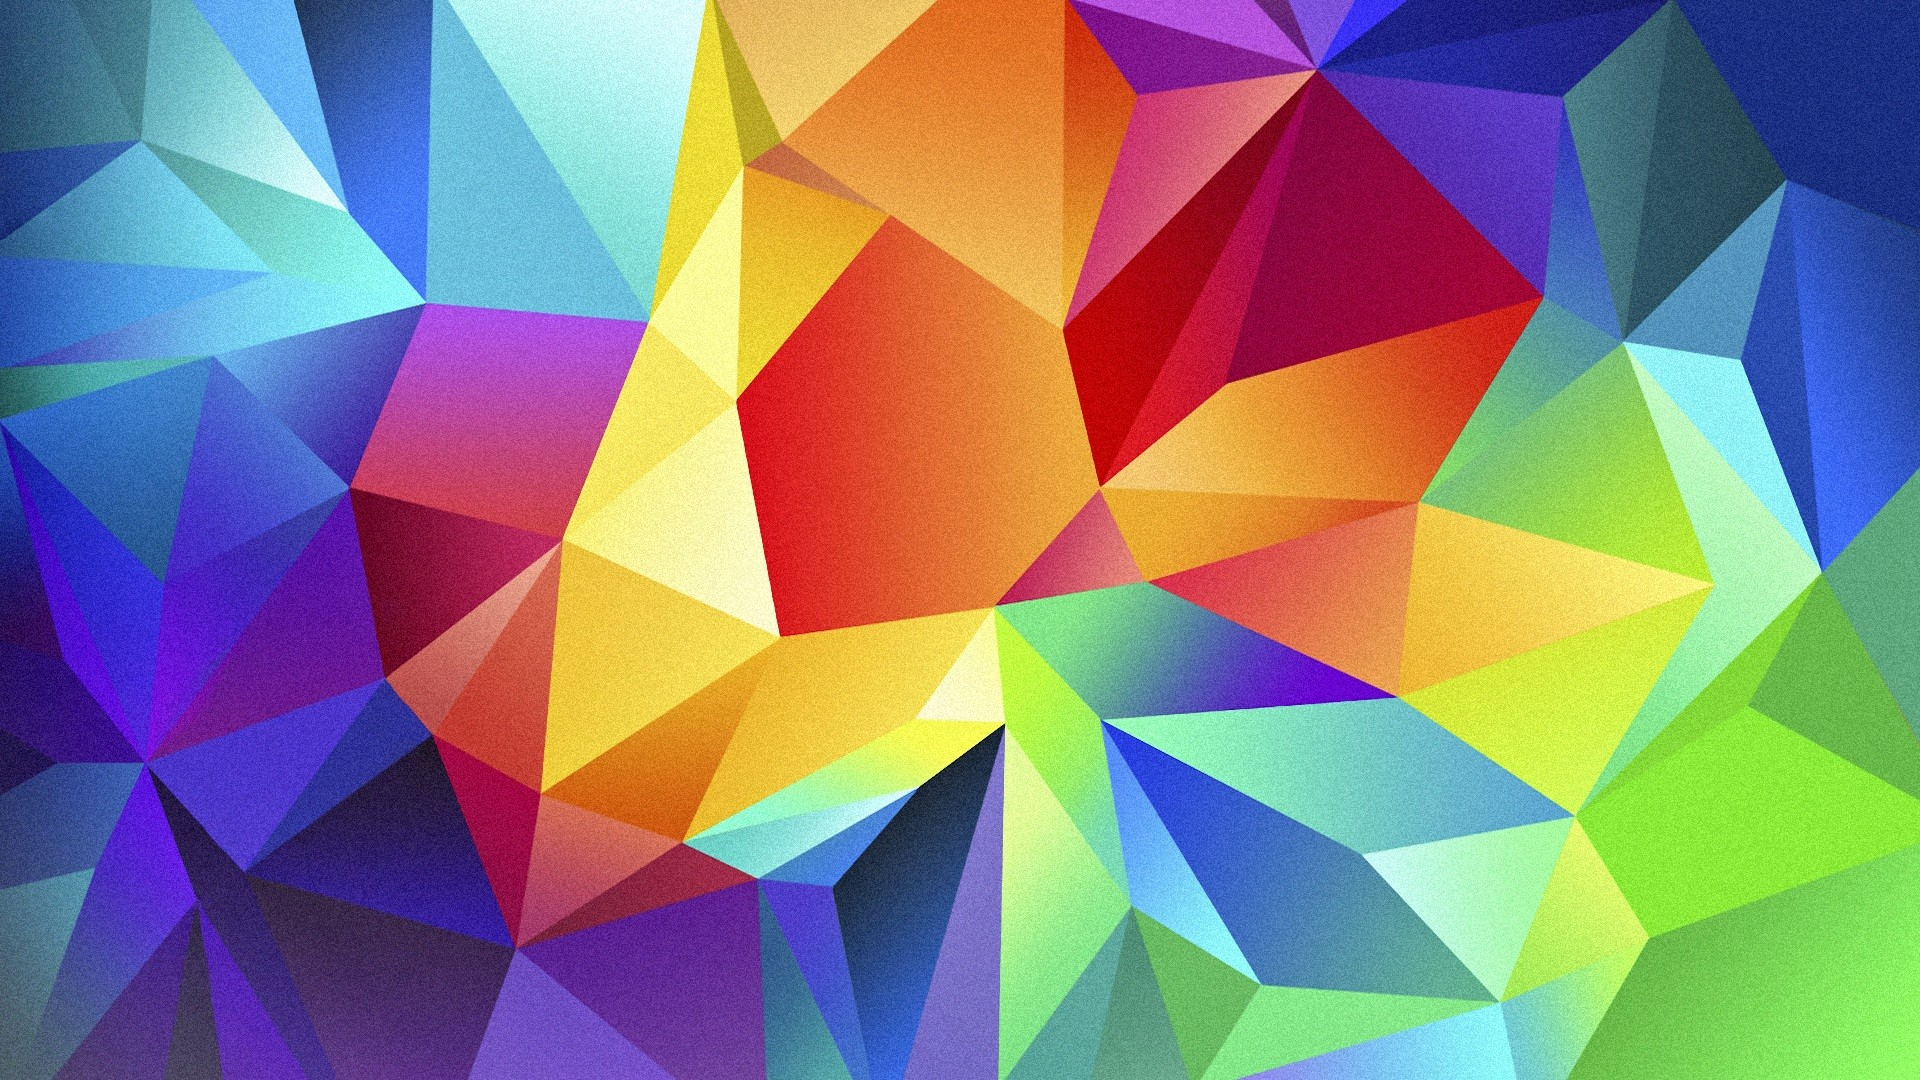 Abstract Water Painting Colors Samsung Galaxy S5 Hd: Wallpaper Polygon, 4k, HD Wallpaper, Android, Triangle